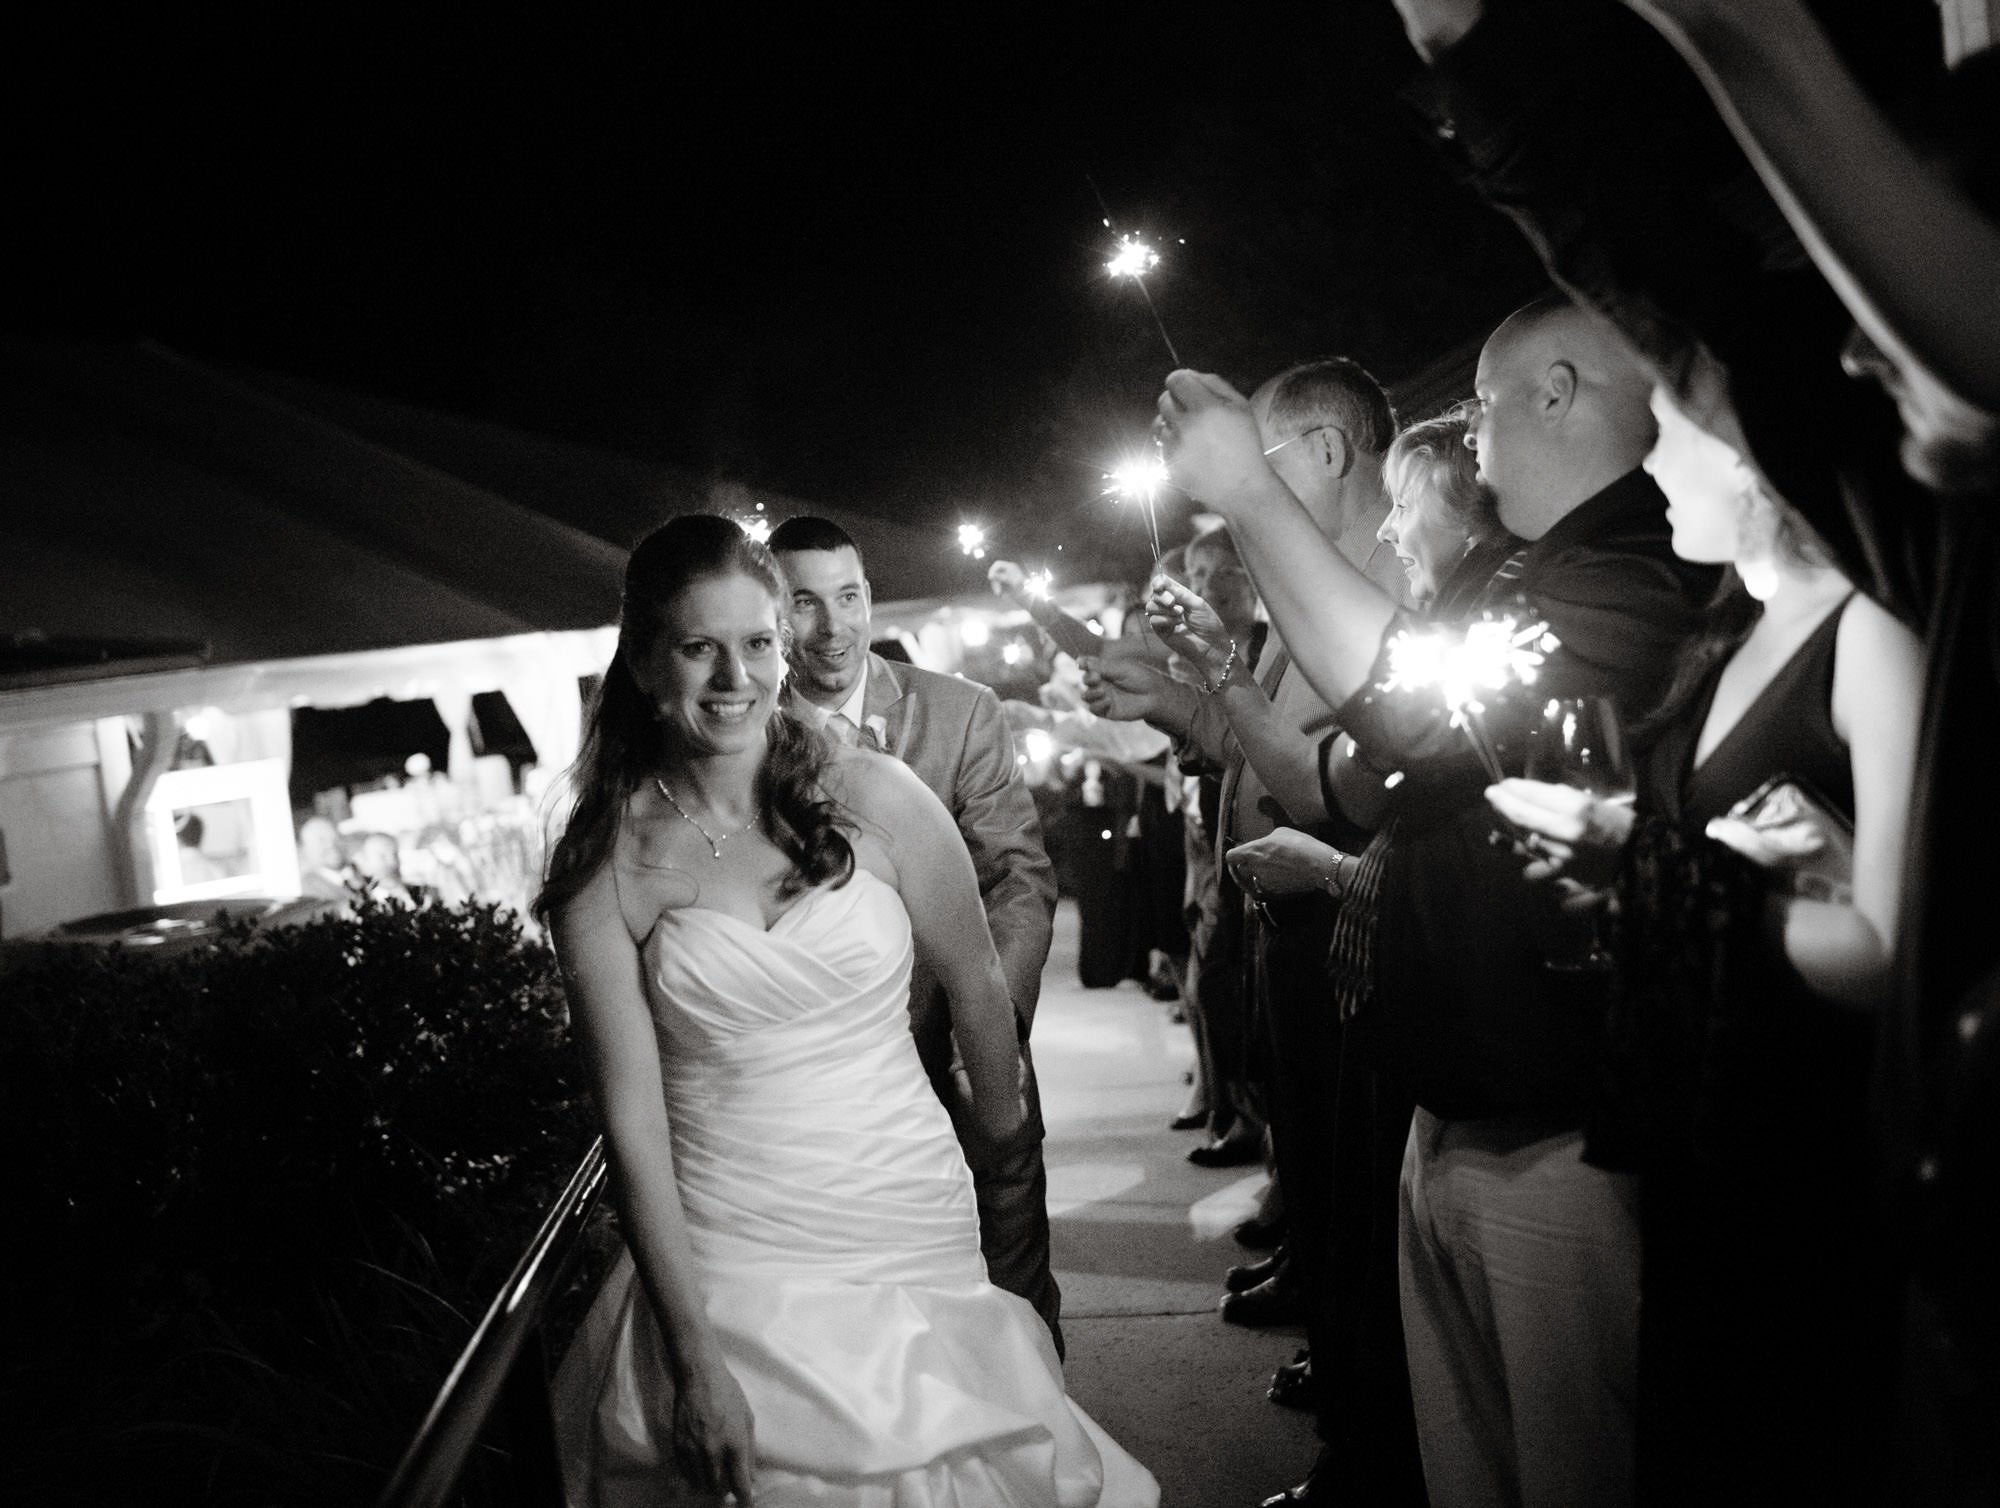 The bride and groom run through sparklers at the conclusion of their Comus Inn wedding.